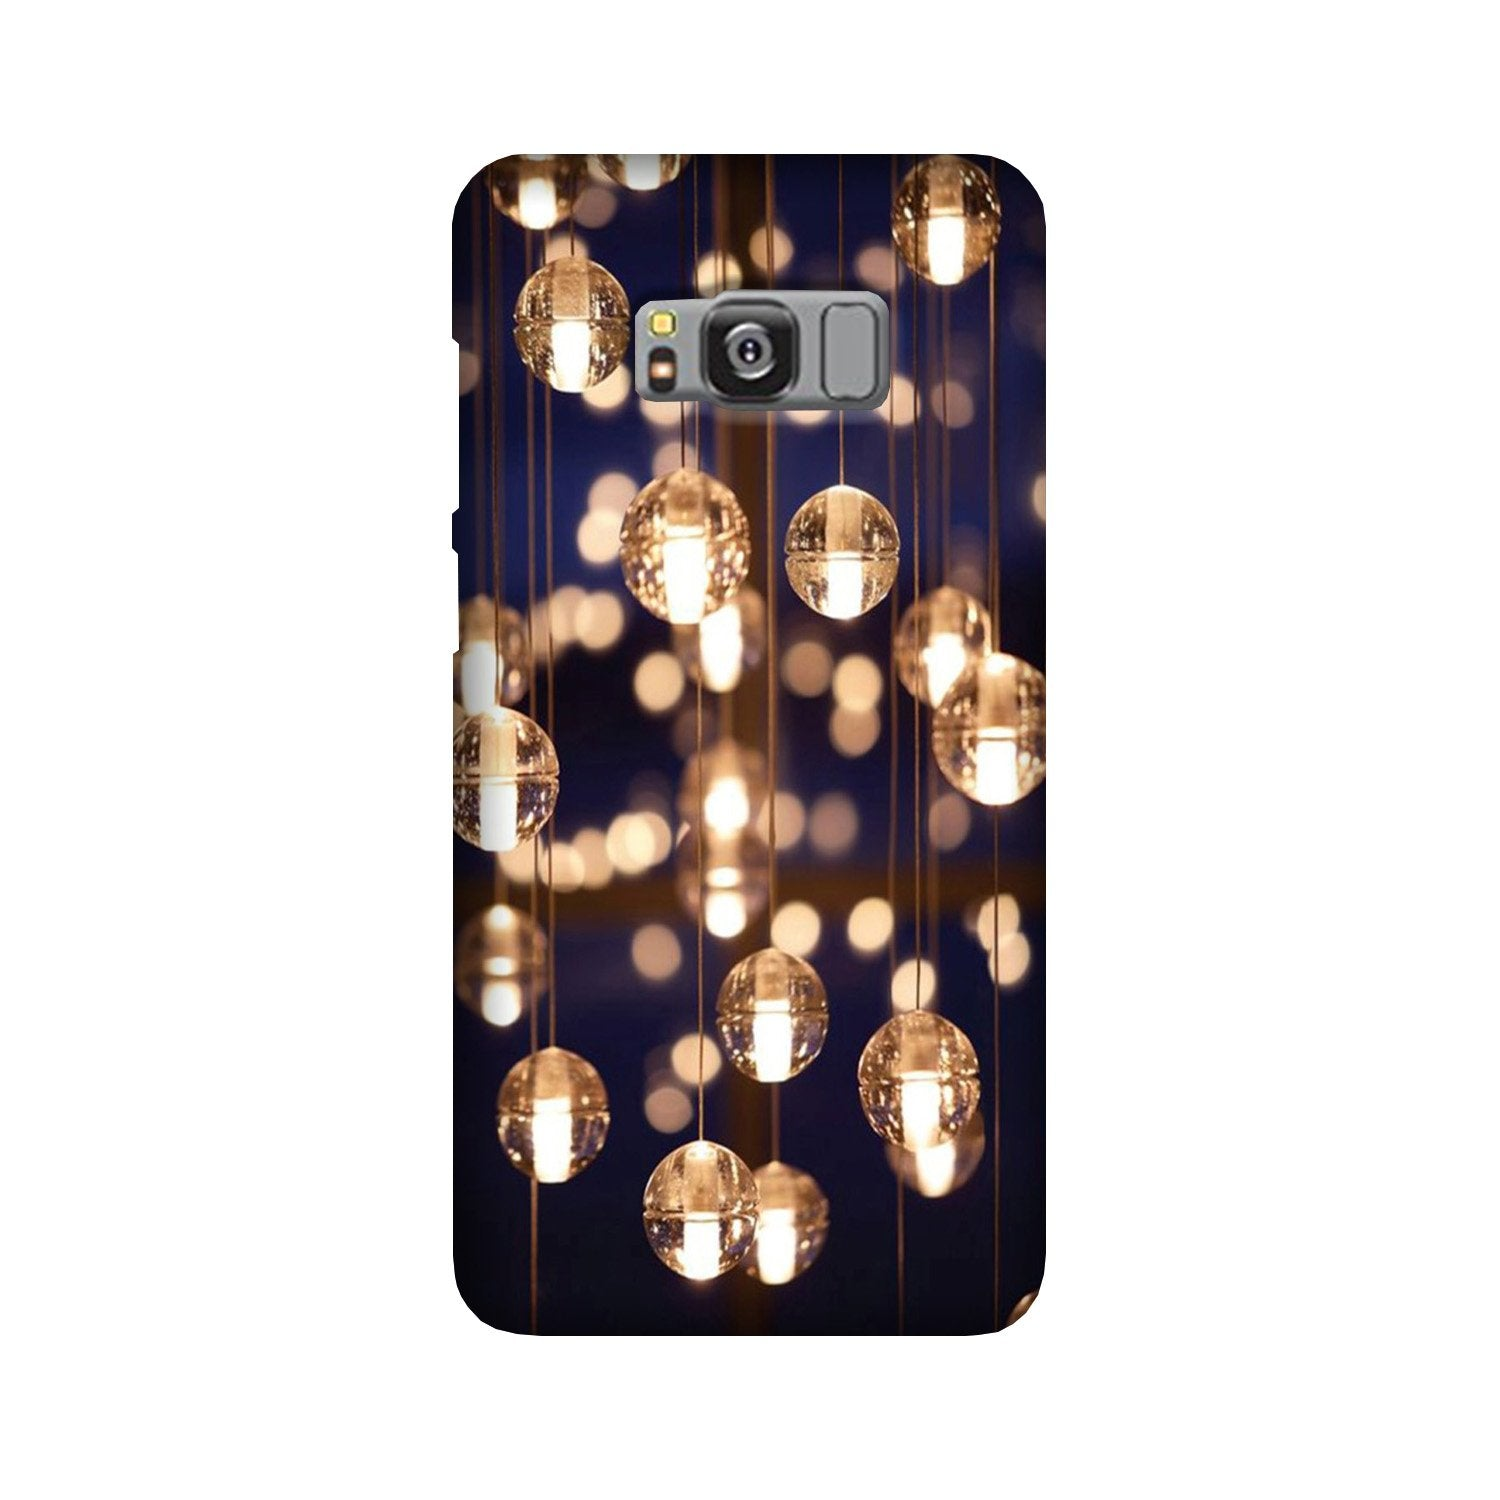 Party Bulb2 Case for Galaxy S8